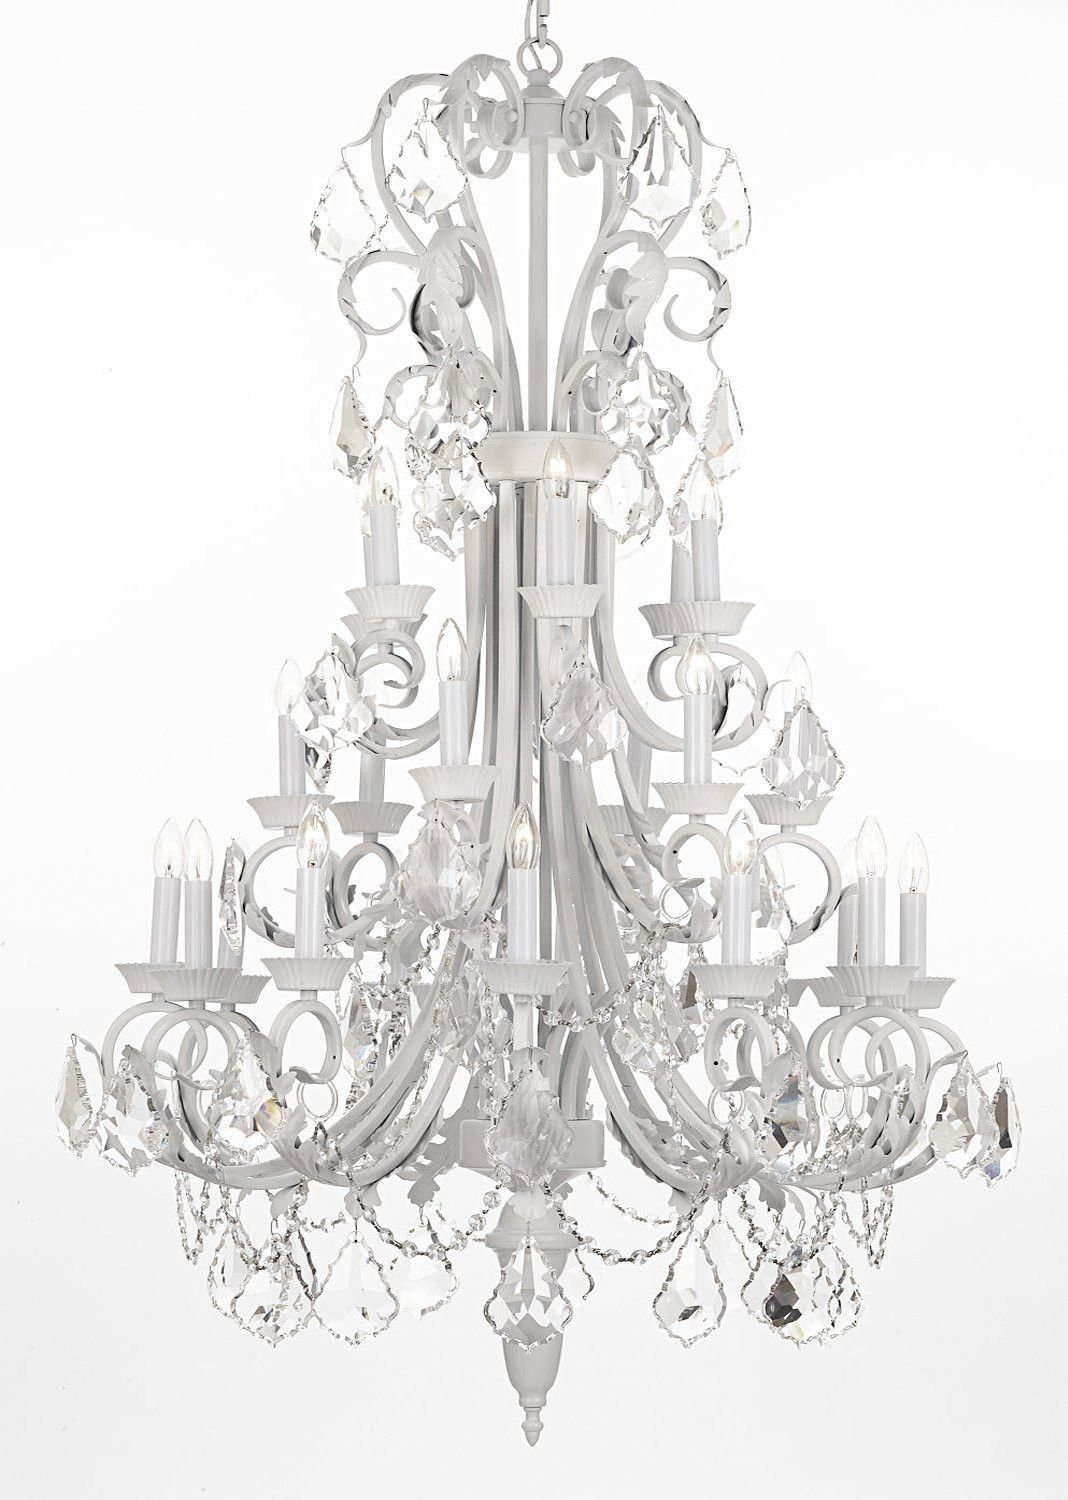 Wrought iron chandelier 50 inches tall with crystal trimmed with wrought iron chandelier 50 inches tall with crystal trimmed with spectra t j10 b12white2601524sw arubaitofo Choice Image